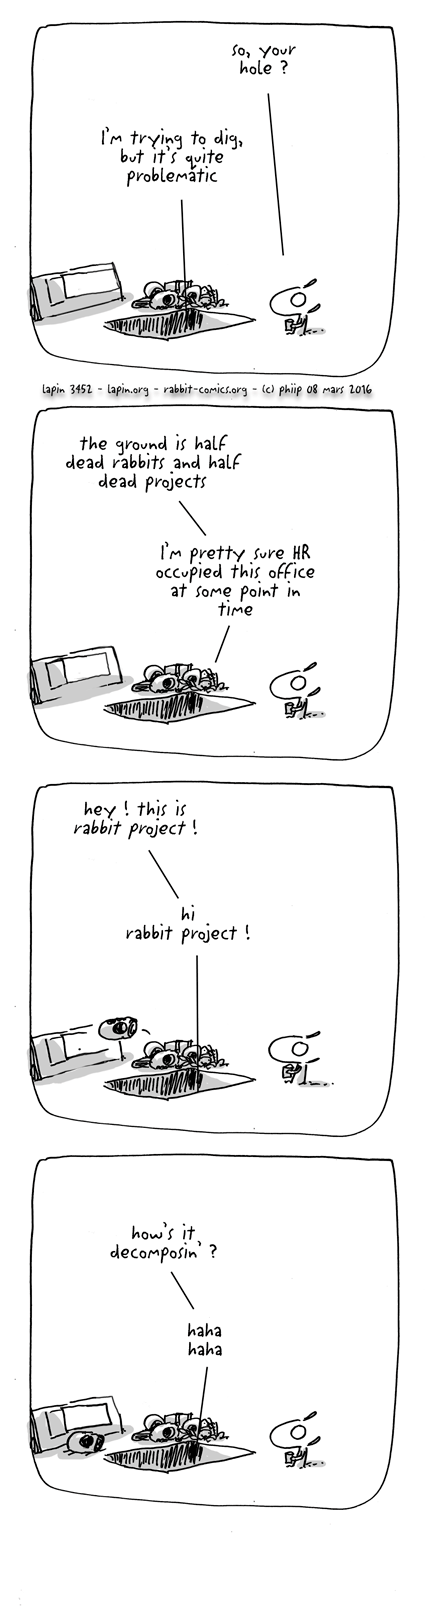 rabbit project